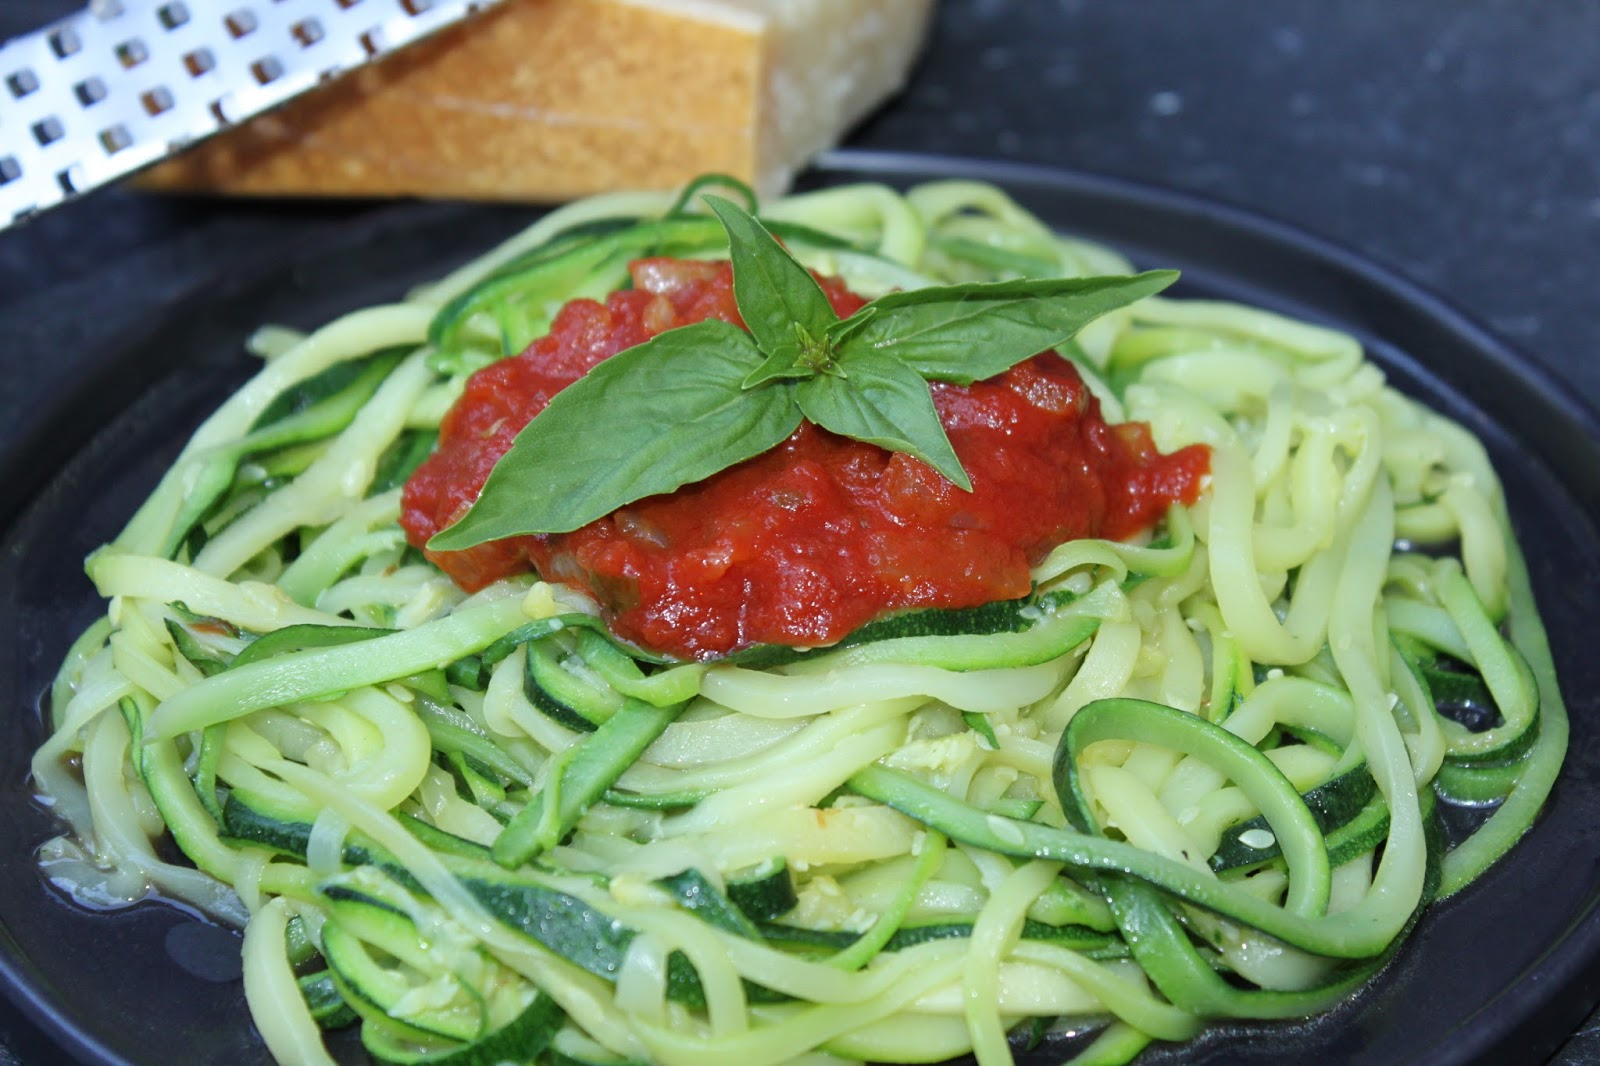 Pots and Frills: Zucchini Spaghetti with Fresh Tomato Sauce